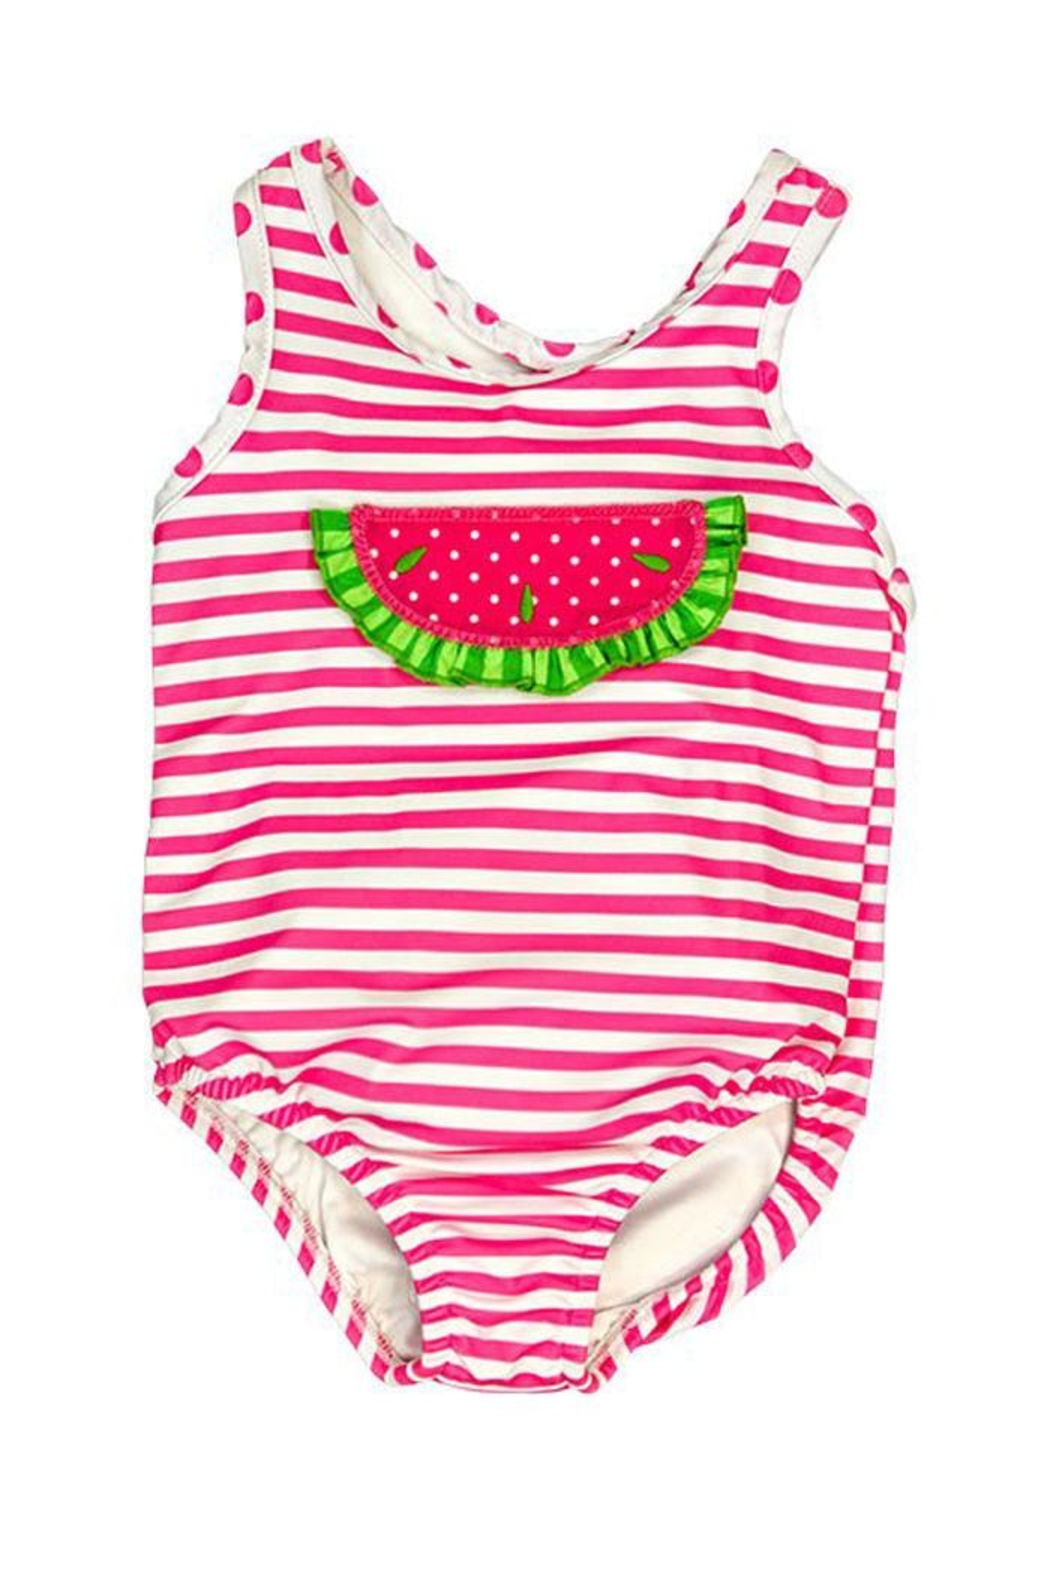 Bailey Boys Watermelon Lycra Swimsuit-Toddler - Main Image